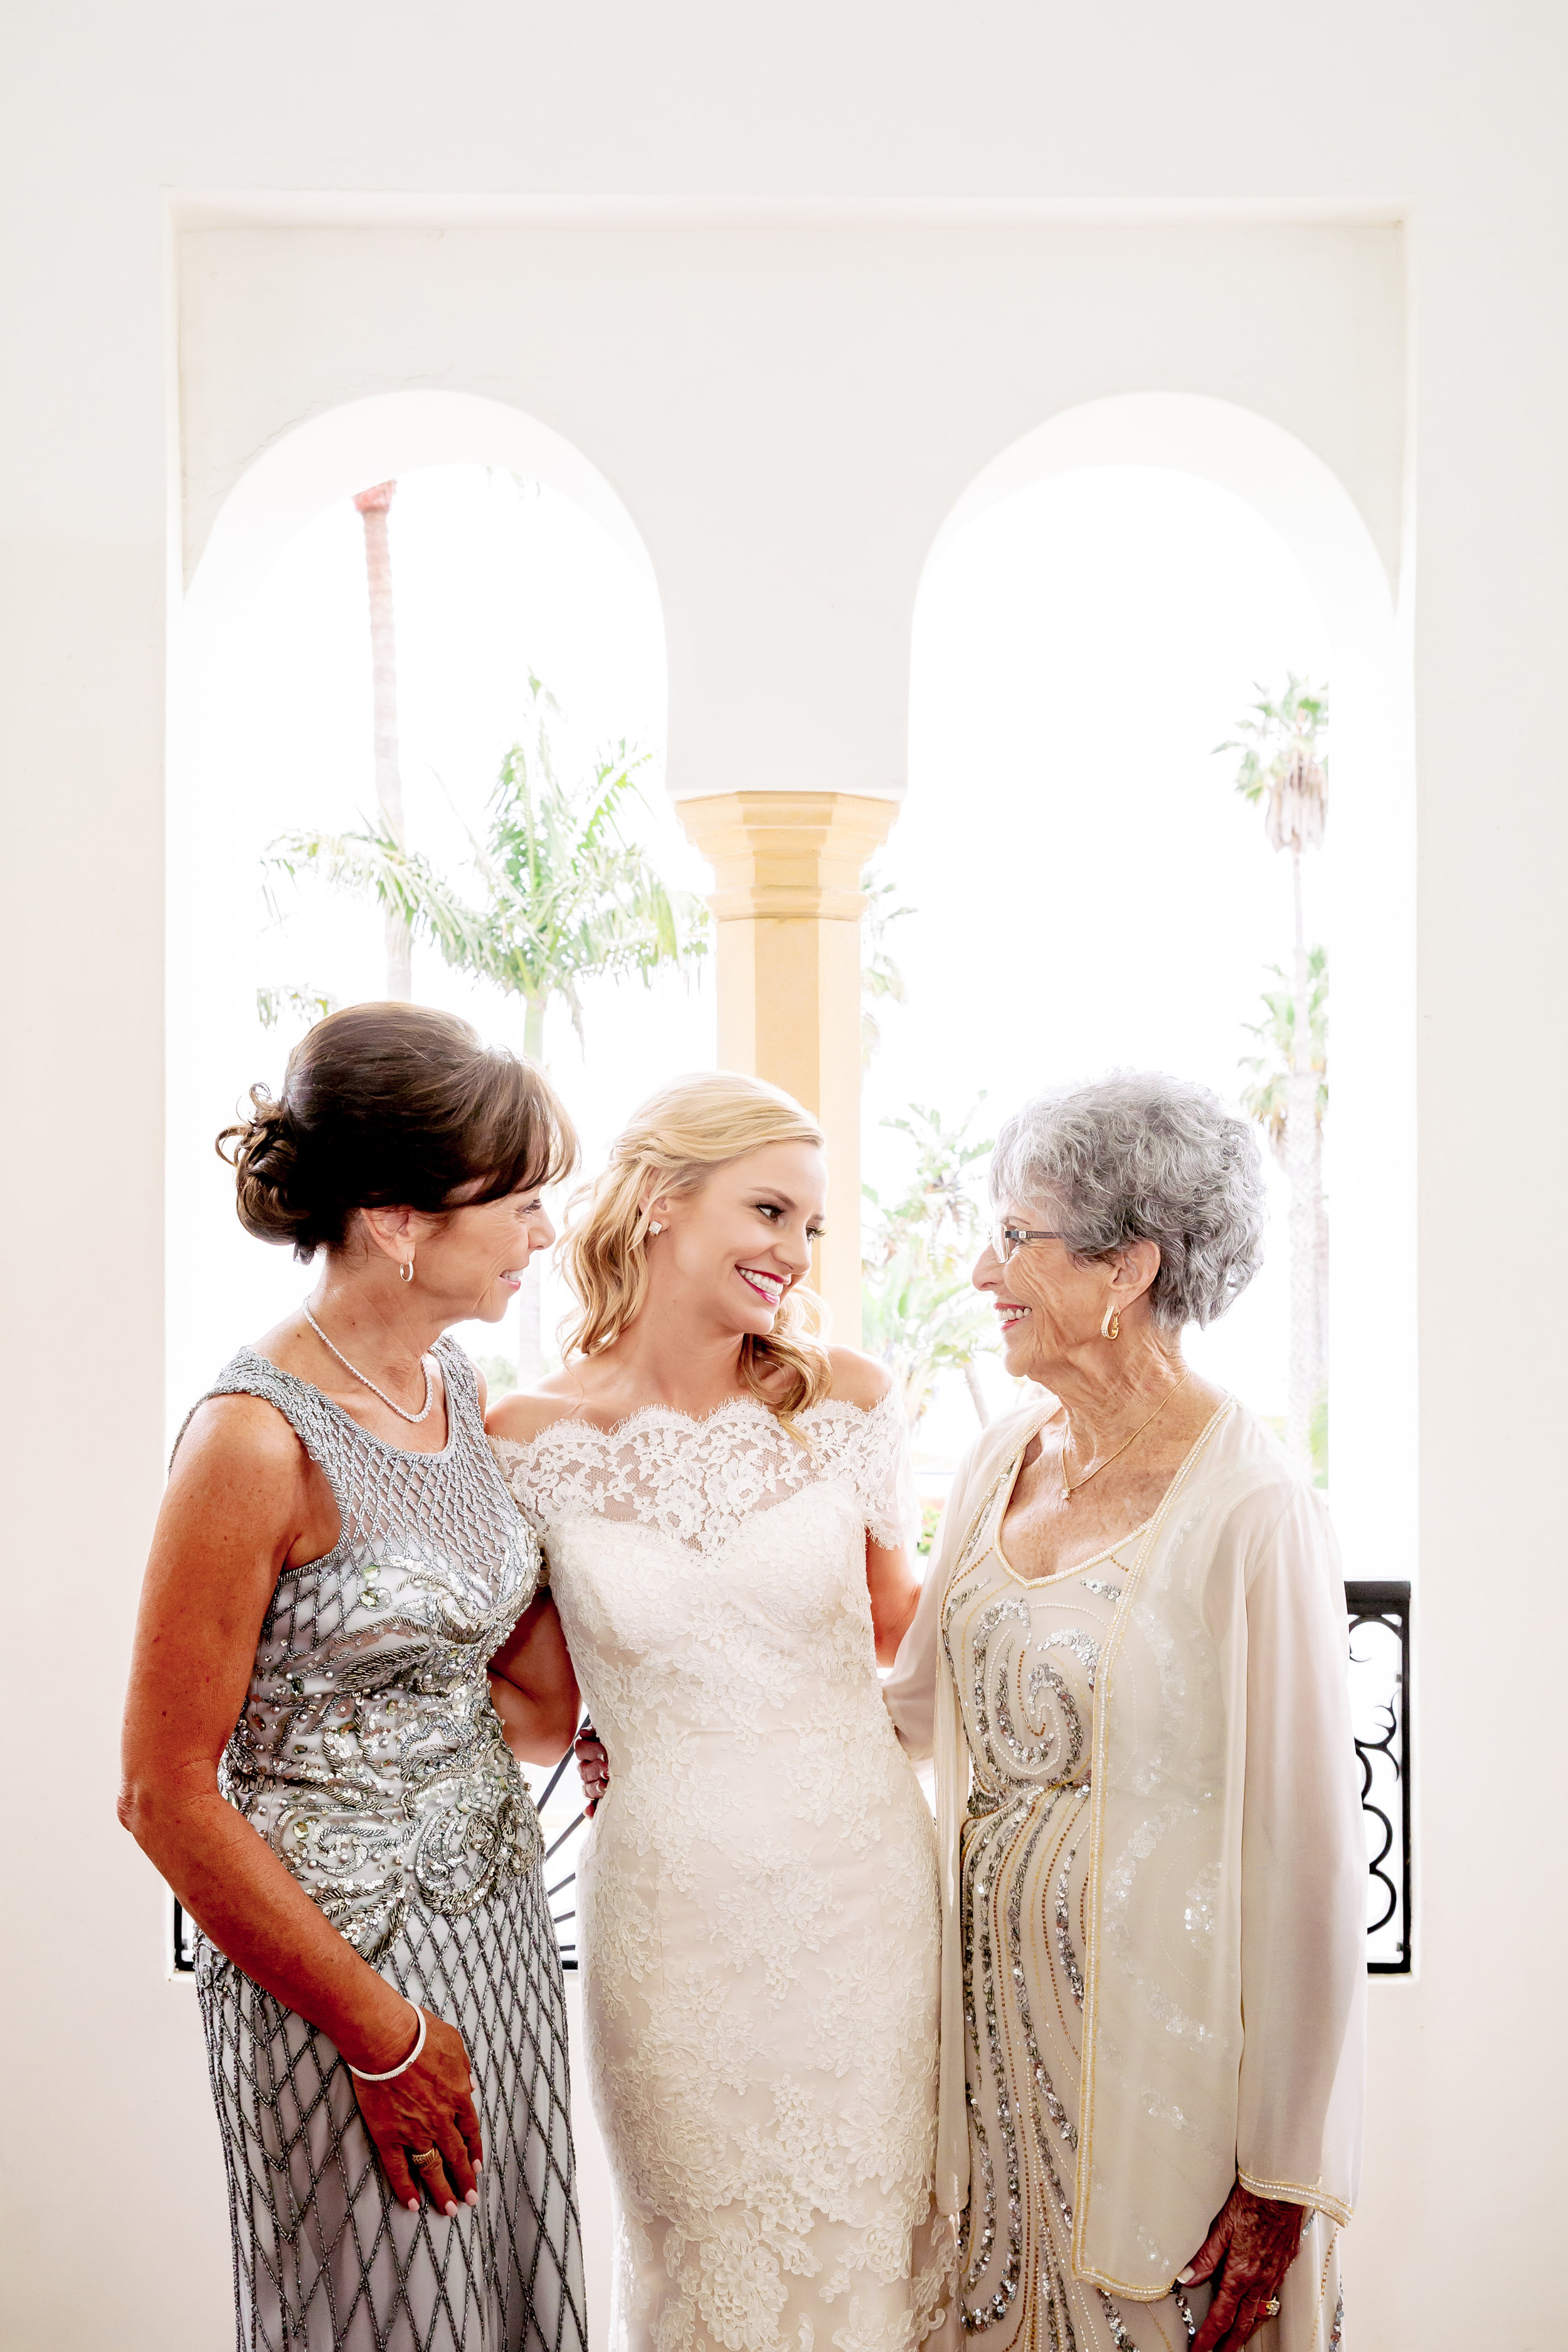 www.santabarbarawedding.com | Rewind Photography | Santa Barbara Historical Museum | Events by M & M | The Santa Barbara Inn | Mother and Grandmother of the Bride